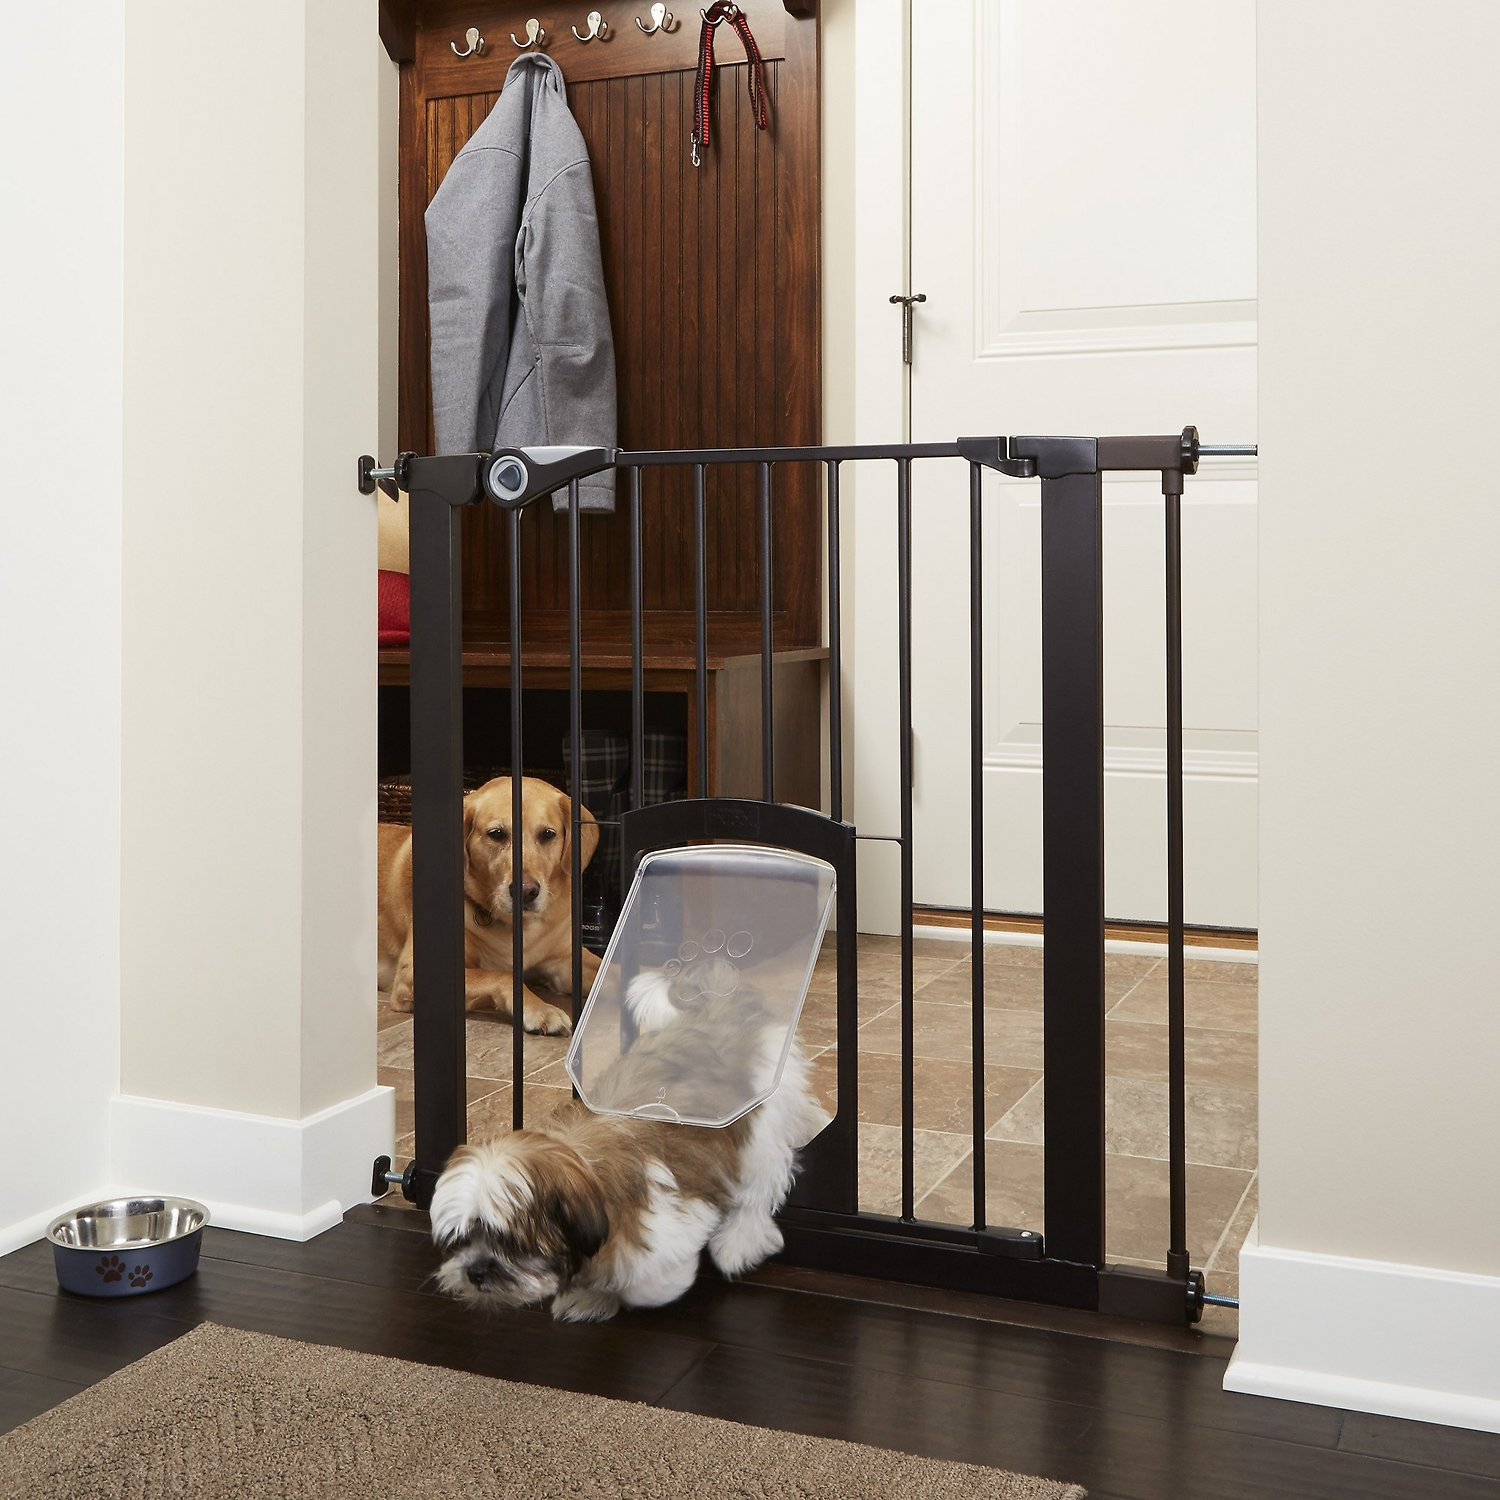 Mypet Petgate Passage Gate With Small Pet Door Bronze 30